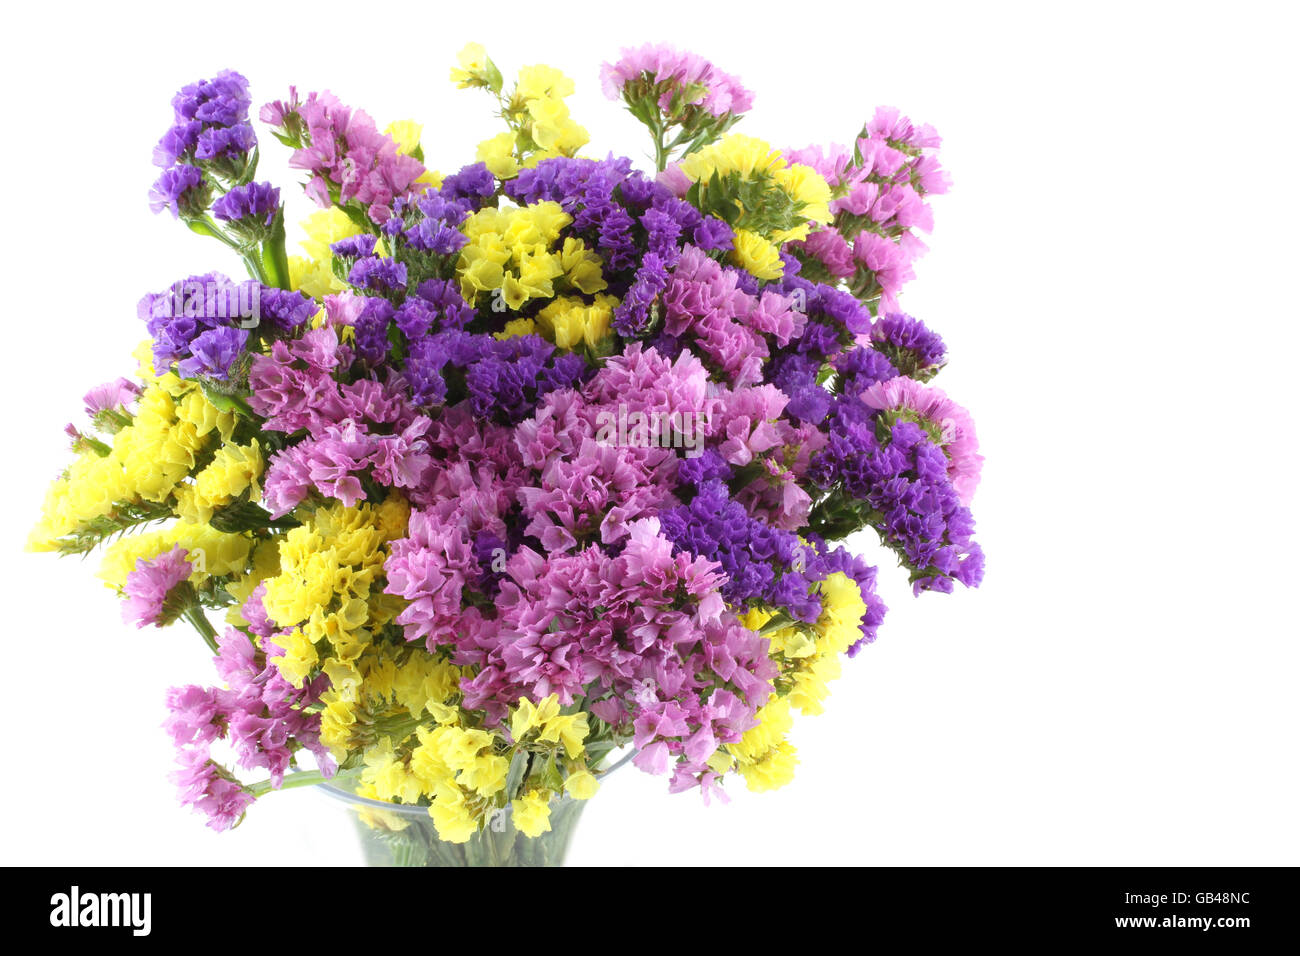 Pink purple yellow statice flowers bouquet on white background pink purple yellow statice flowers bouquet on white background mightylinksfo